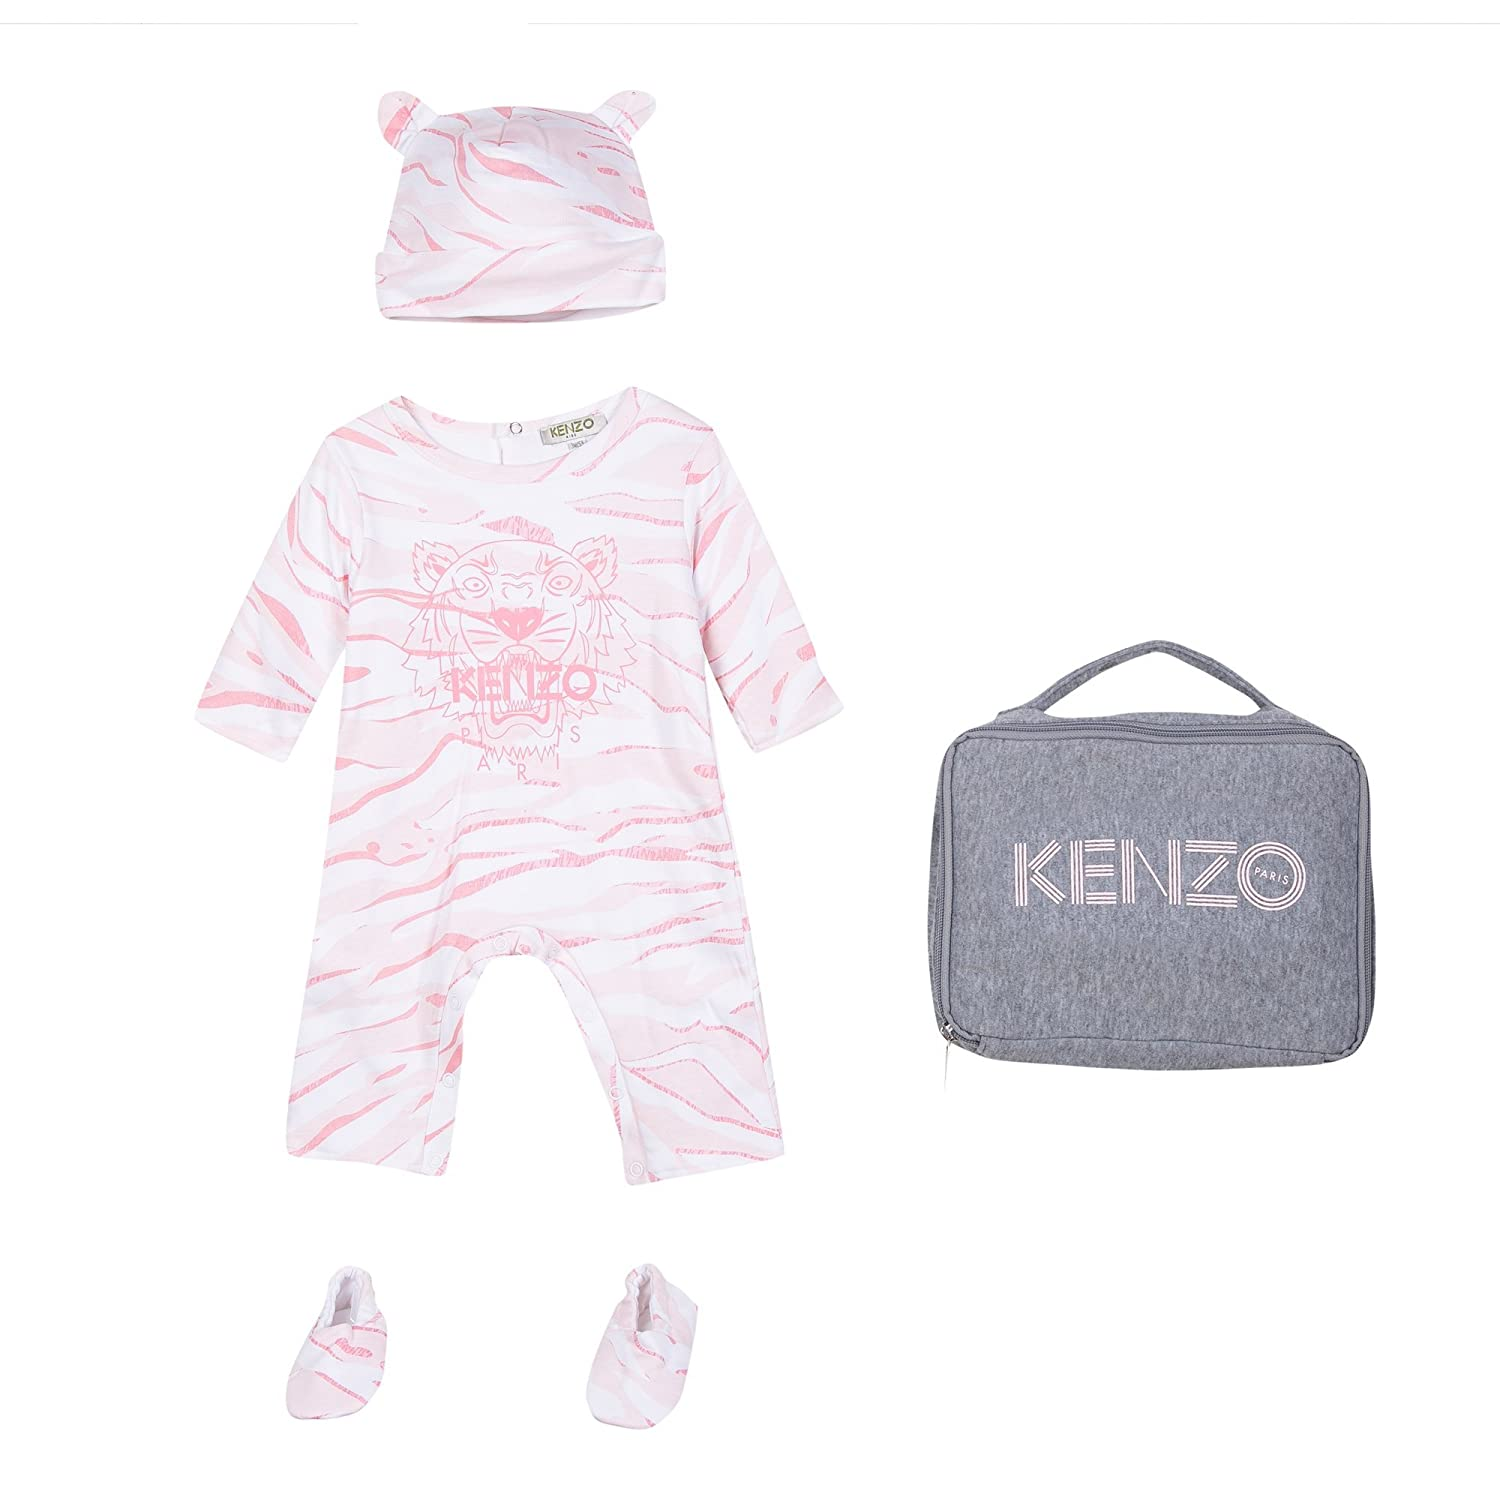 Kenzo Baby Carmelie Accessory Set for Boy or Girl